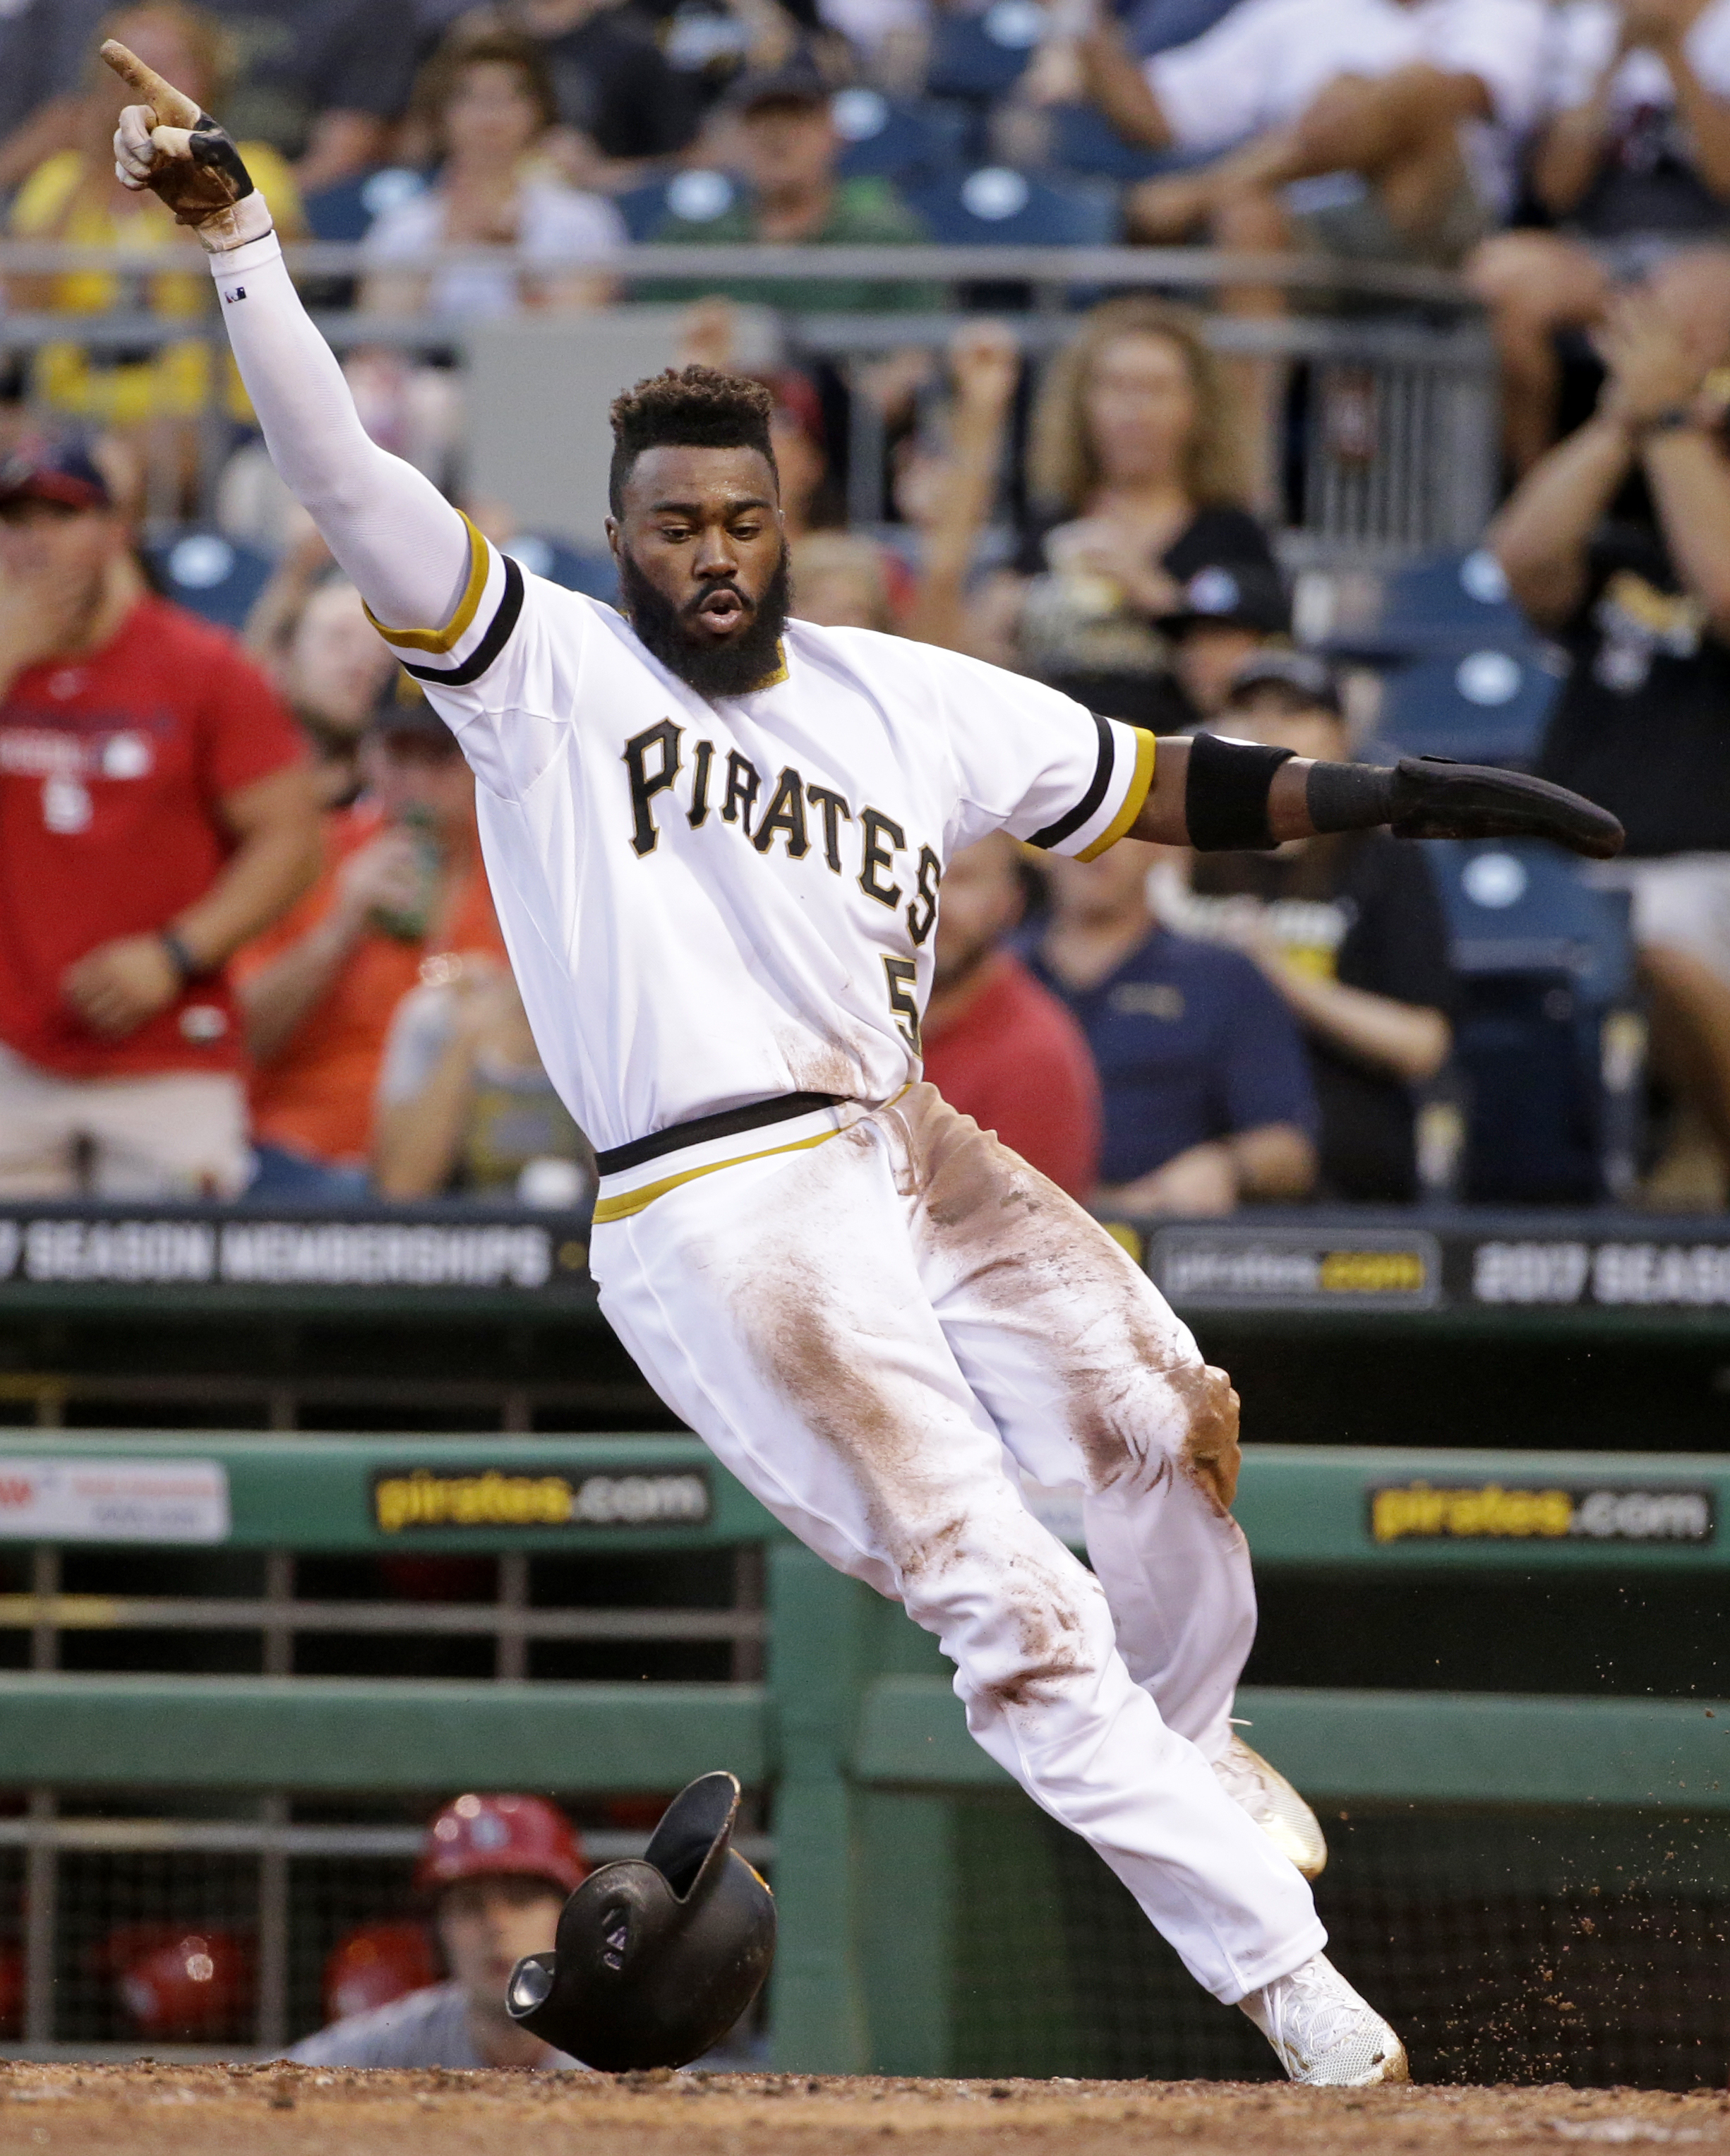 Pittsburgh Pirates' Josh Harrison celebrates after scoring around the tag of St. Louis Cardinals catcher Yadier Molina during the first inning of a baseball game in Pittsburgh, Wednesday, Sept. 7, 2016. (AP Photo/Gene J. Puskar)